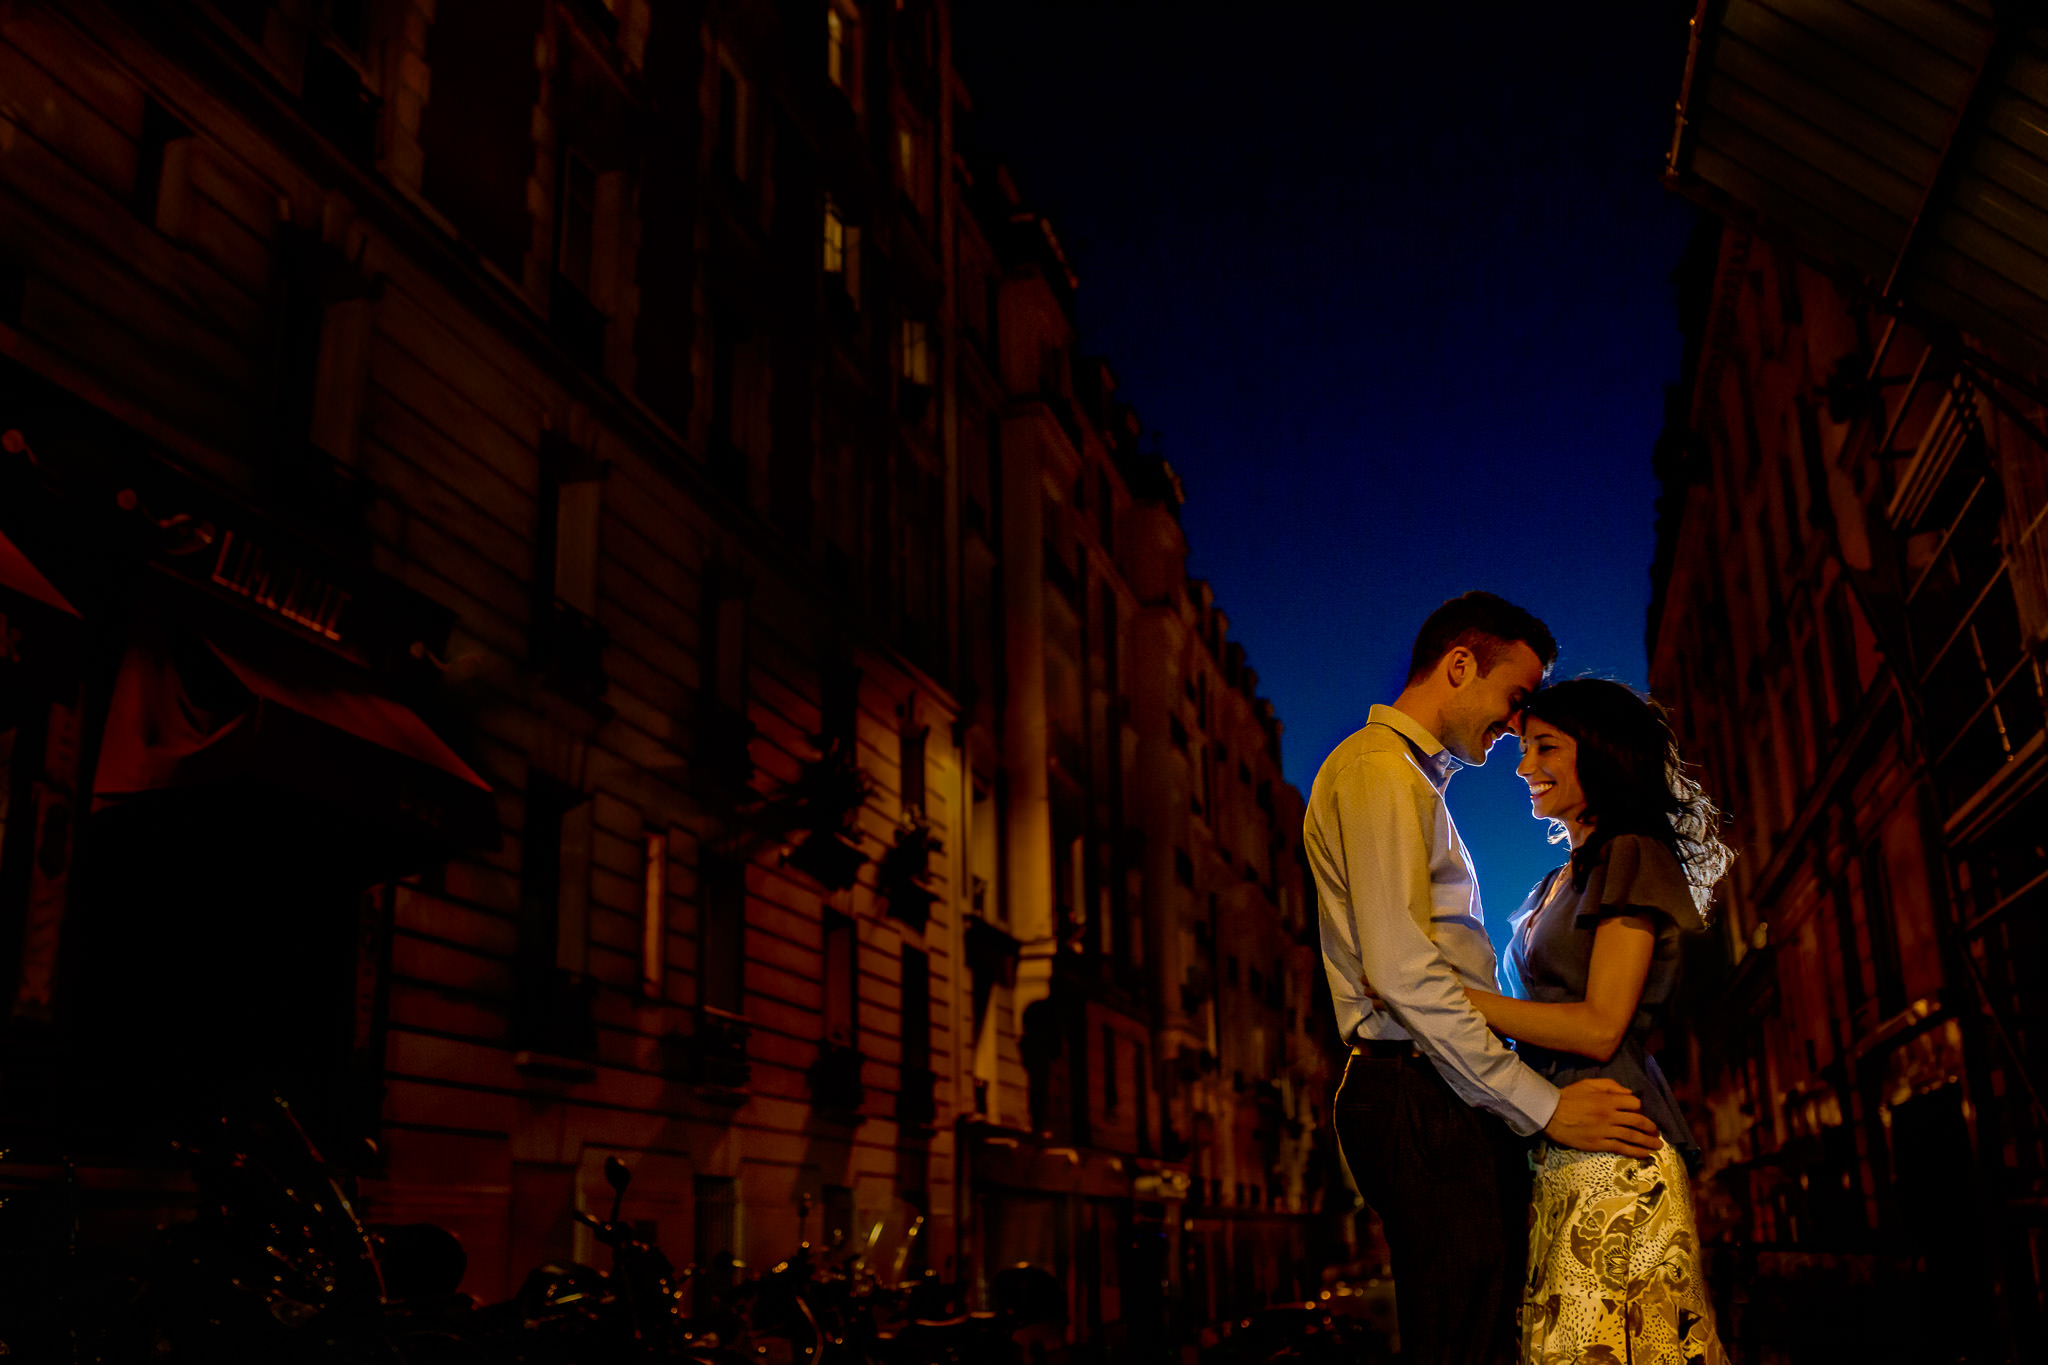 Engagement photo in Paris low light in streets with blue sky